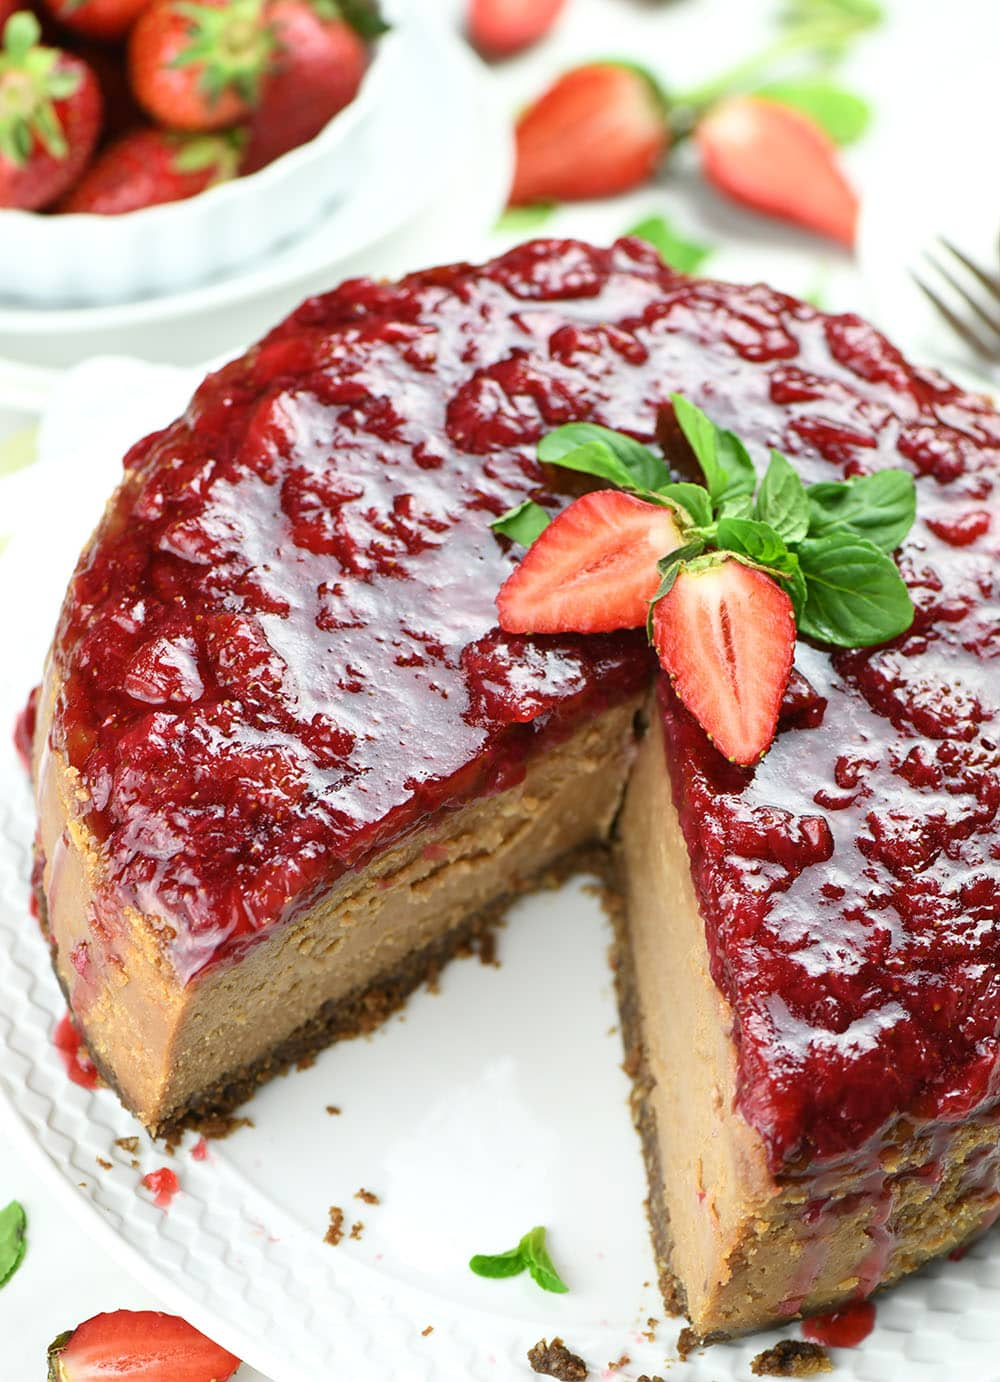 Image of Strawberry Chocolate Cheesecake from top.